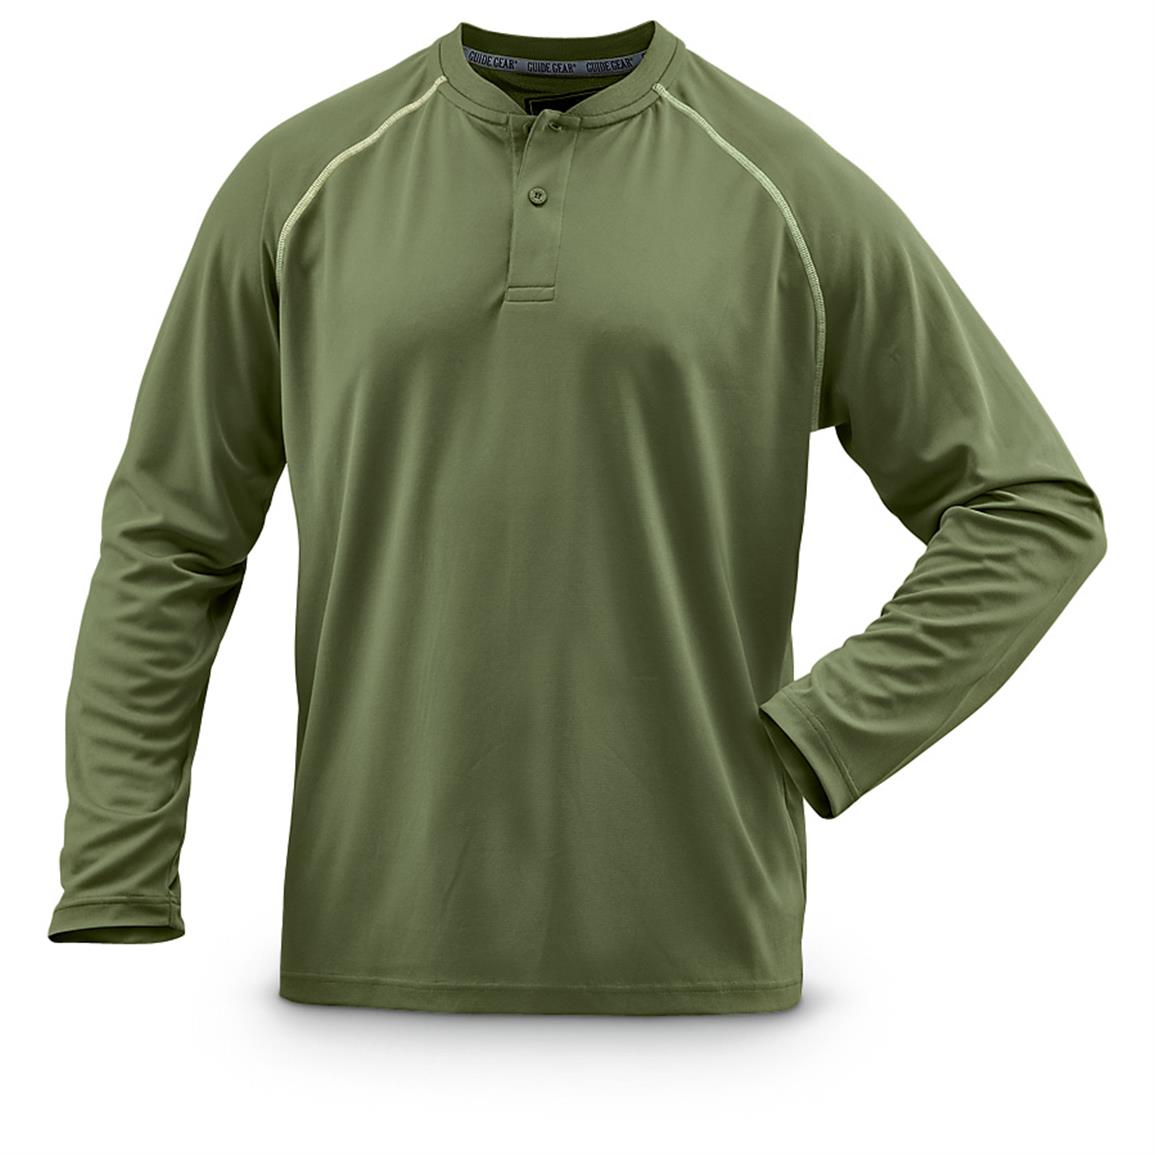 Guide Gear Men's Performance Long-Sleeve Henley Shirt, Green